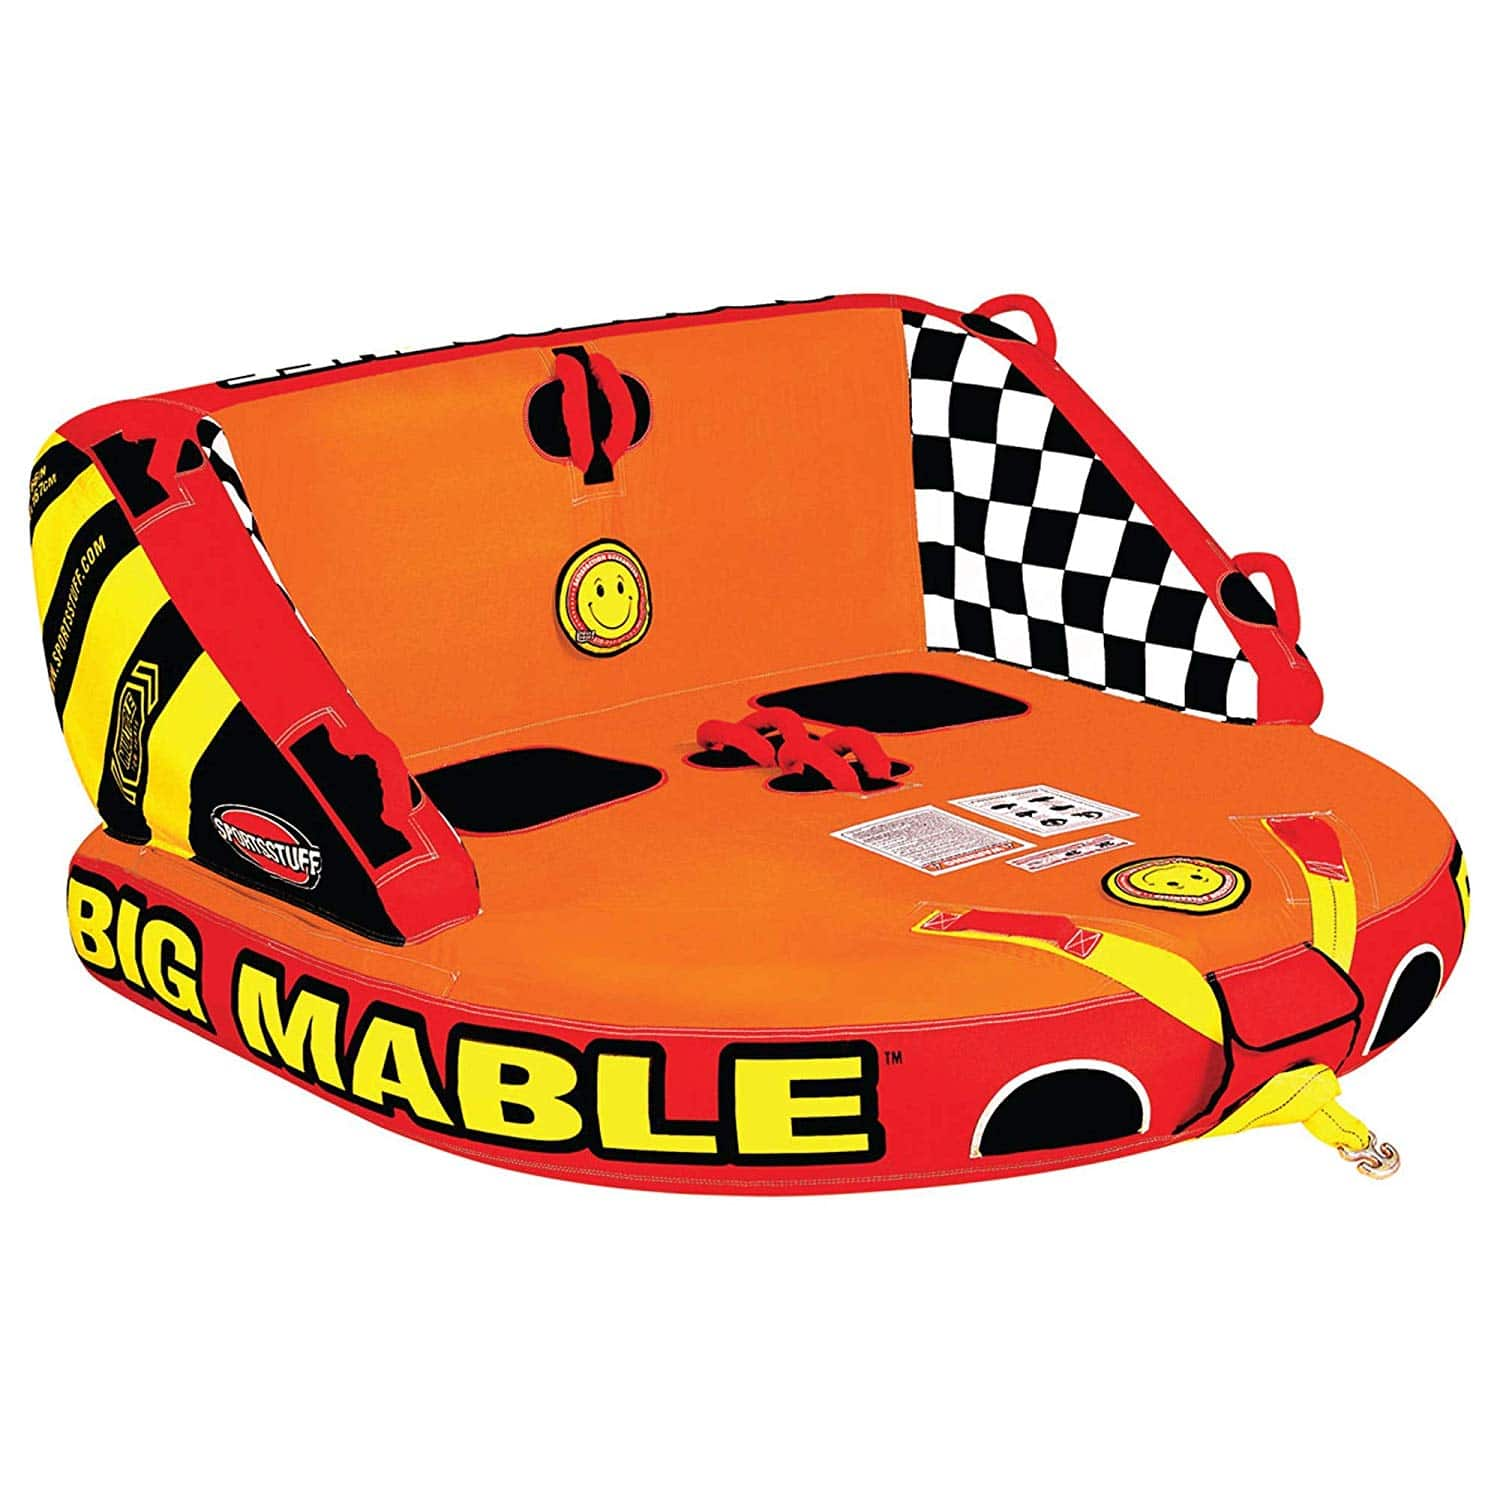 Sportsstuff Big Mable | 1-2 Rider Towable Tube for Boating 142.00 Amazon, 60 off normal